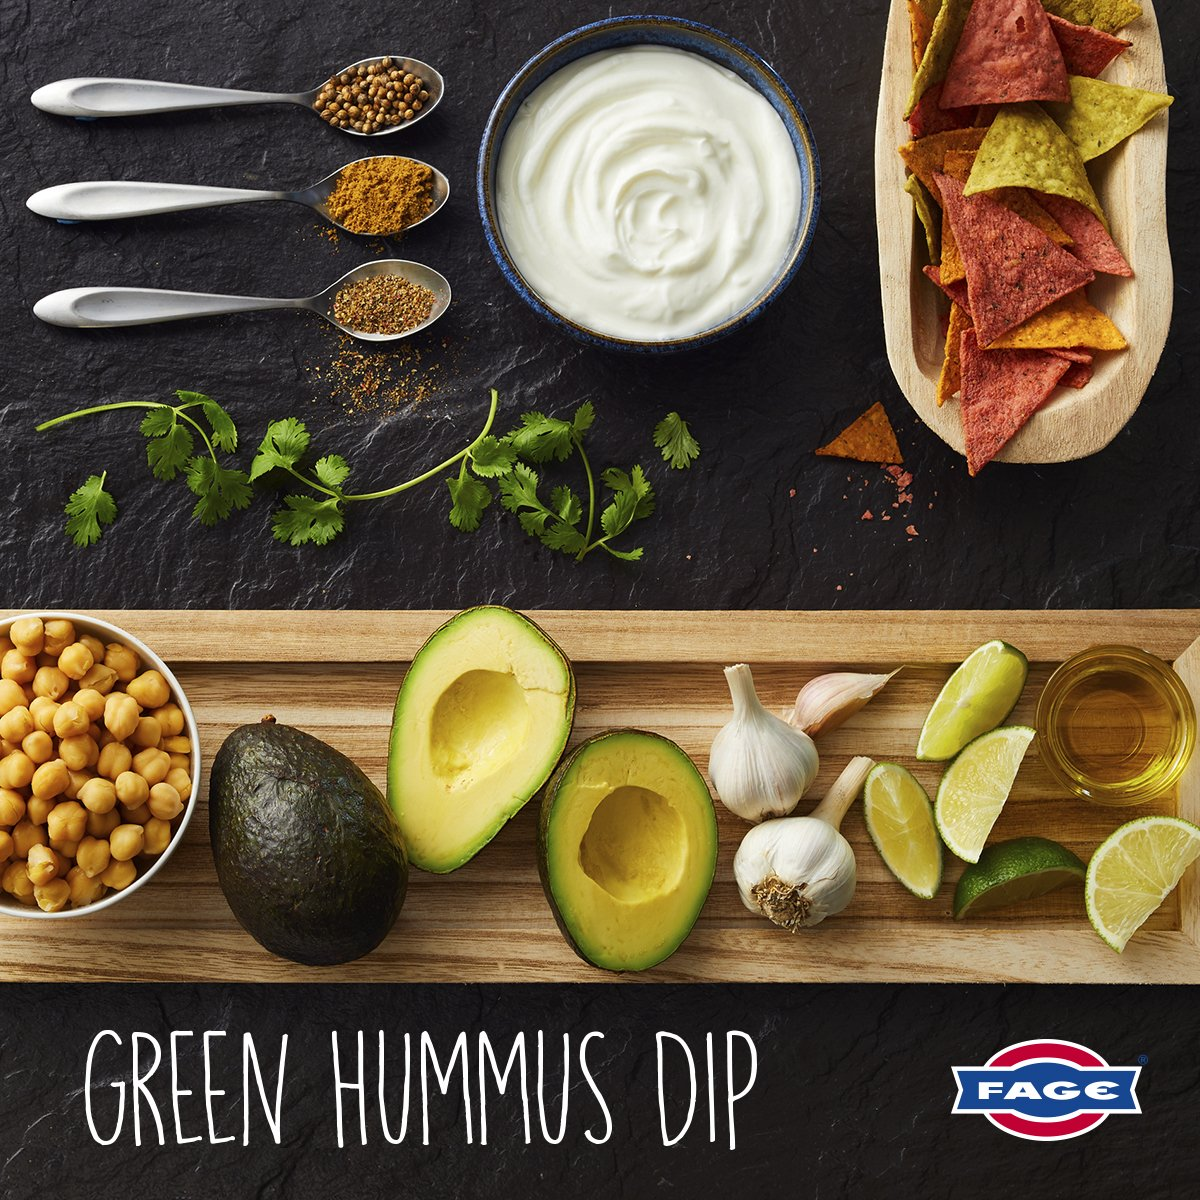 Are you a superfood fan? If so, try avocado with FAGE Total 2% for easy hummus snacking!  https://t.co/CViPL1zNC0 https://t.co/niEUK9EXv2